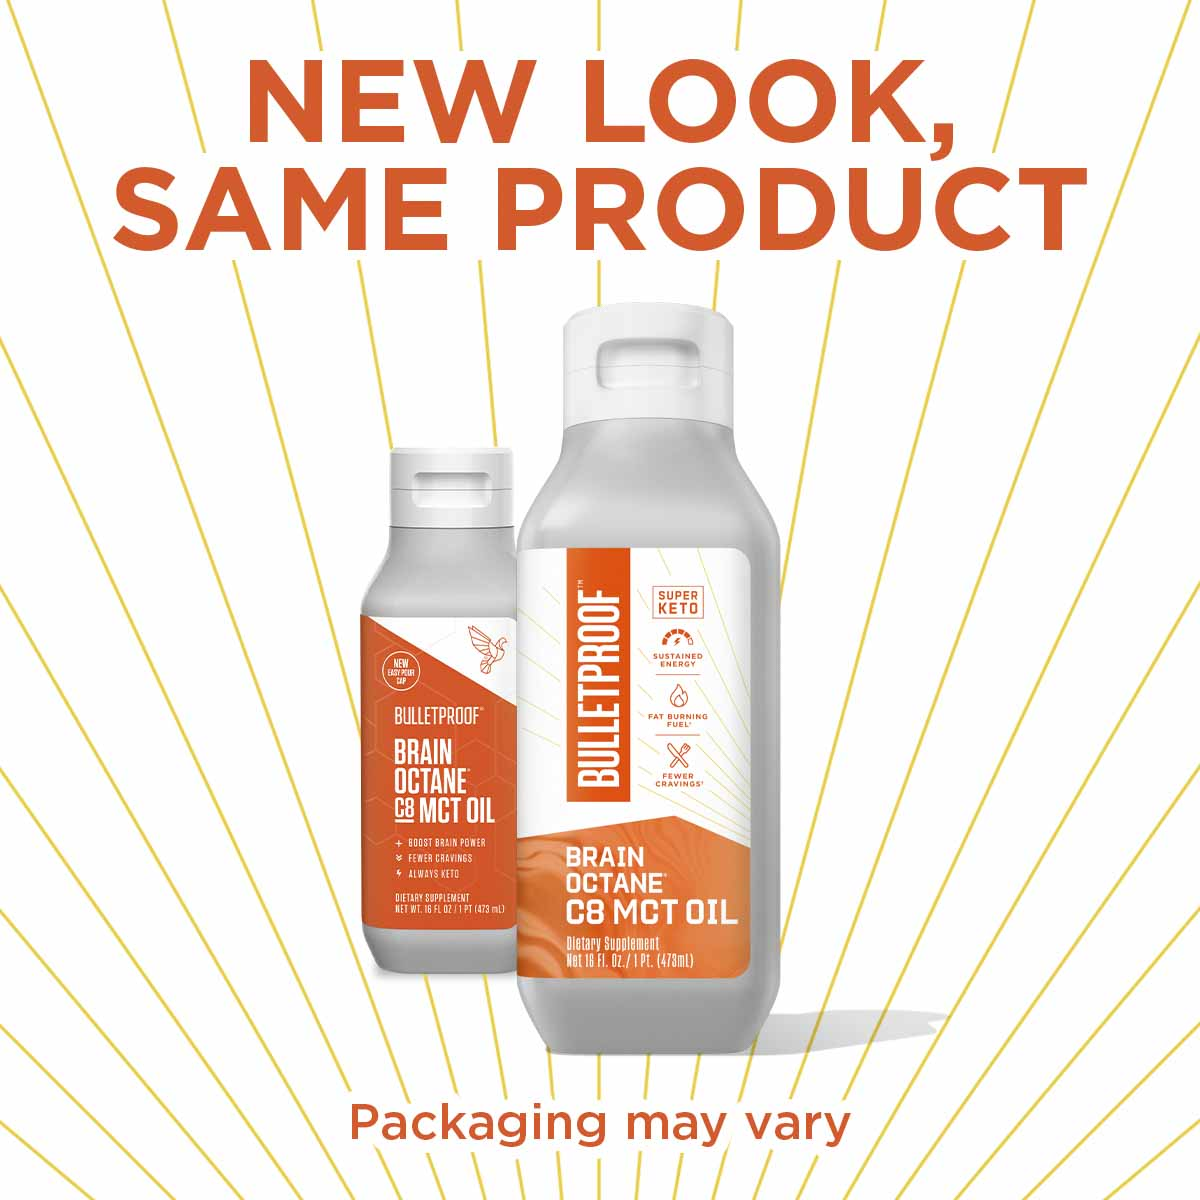 New Look, Same Product Bulletproof Brain Octane Oil 16 oz - 3 pack